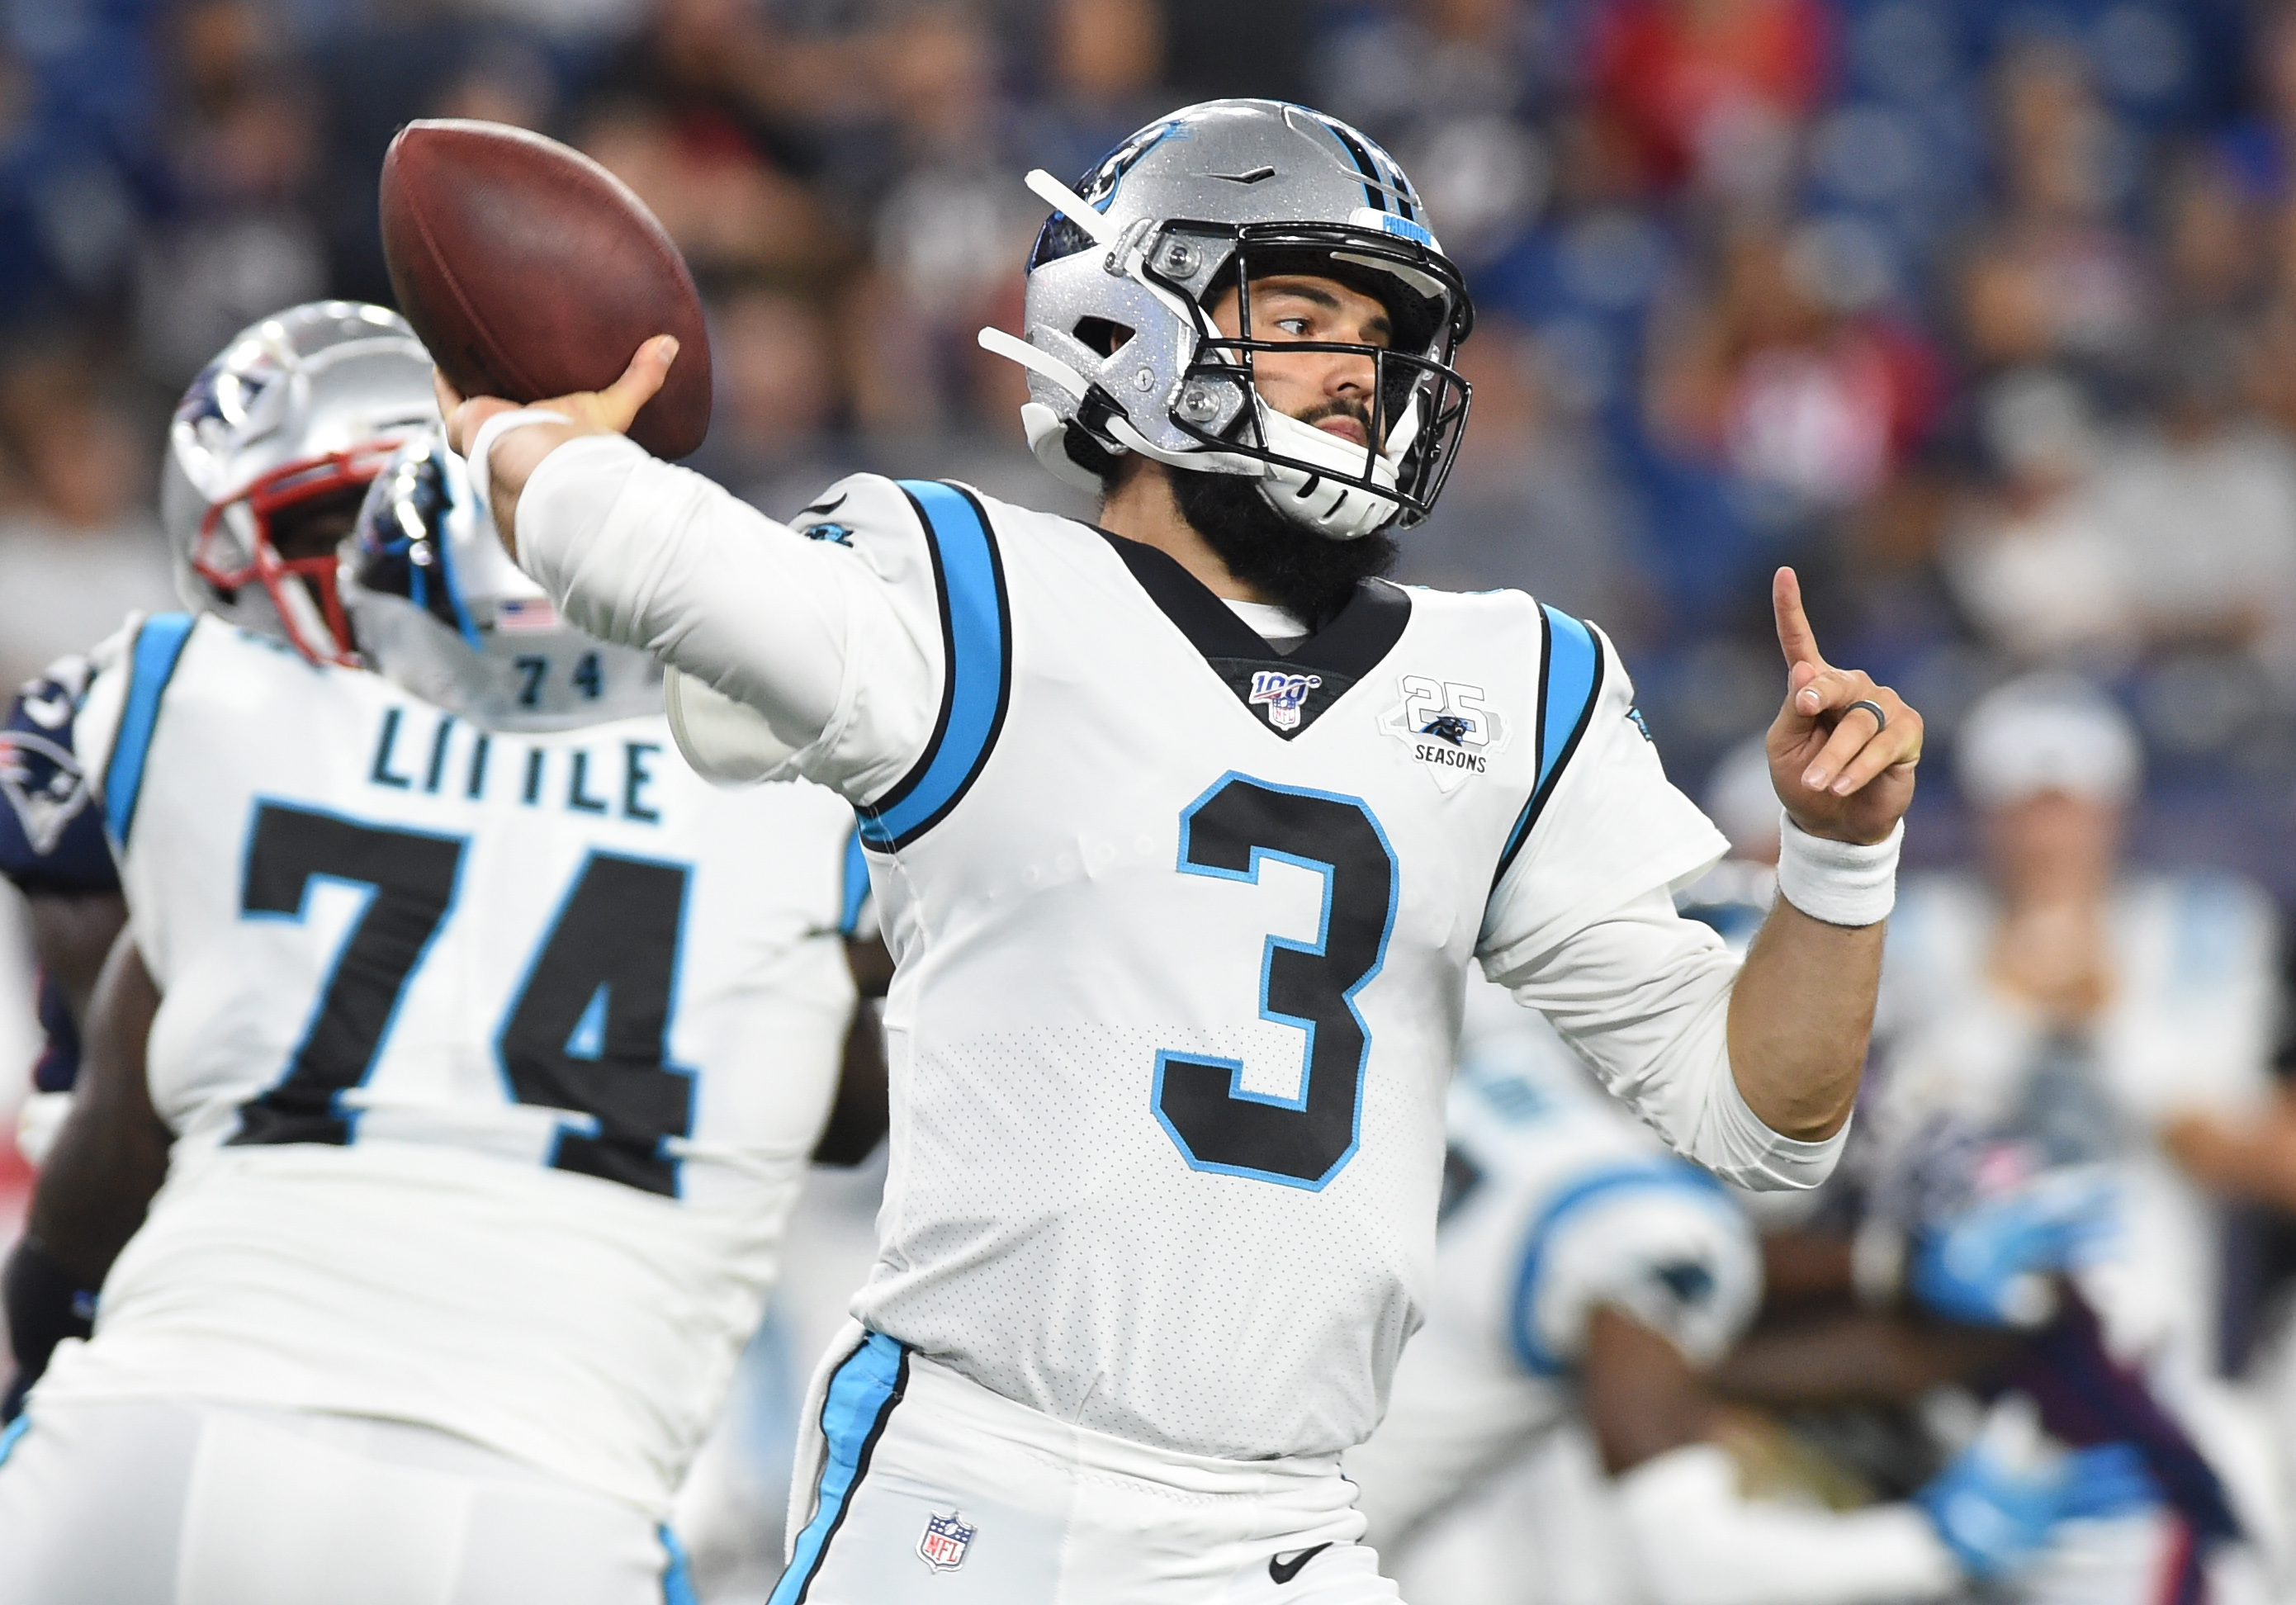 Panthers Prep Grier for Pro Debut